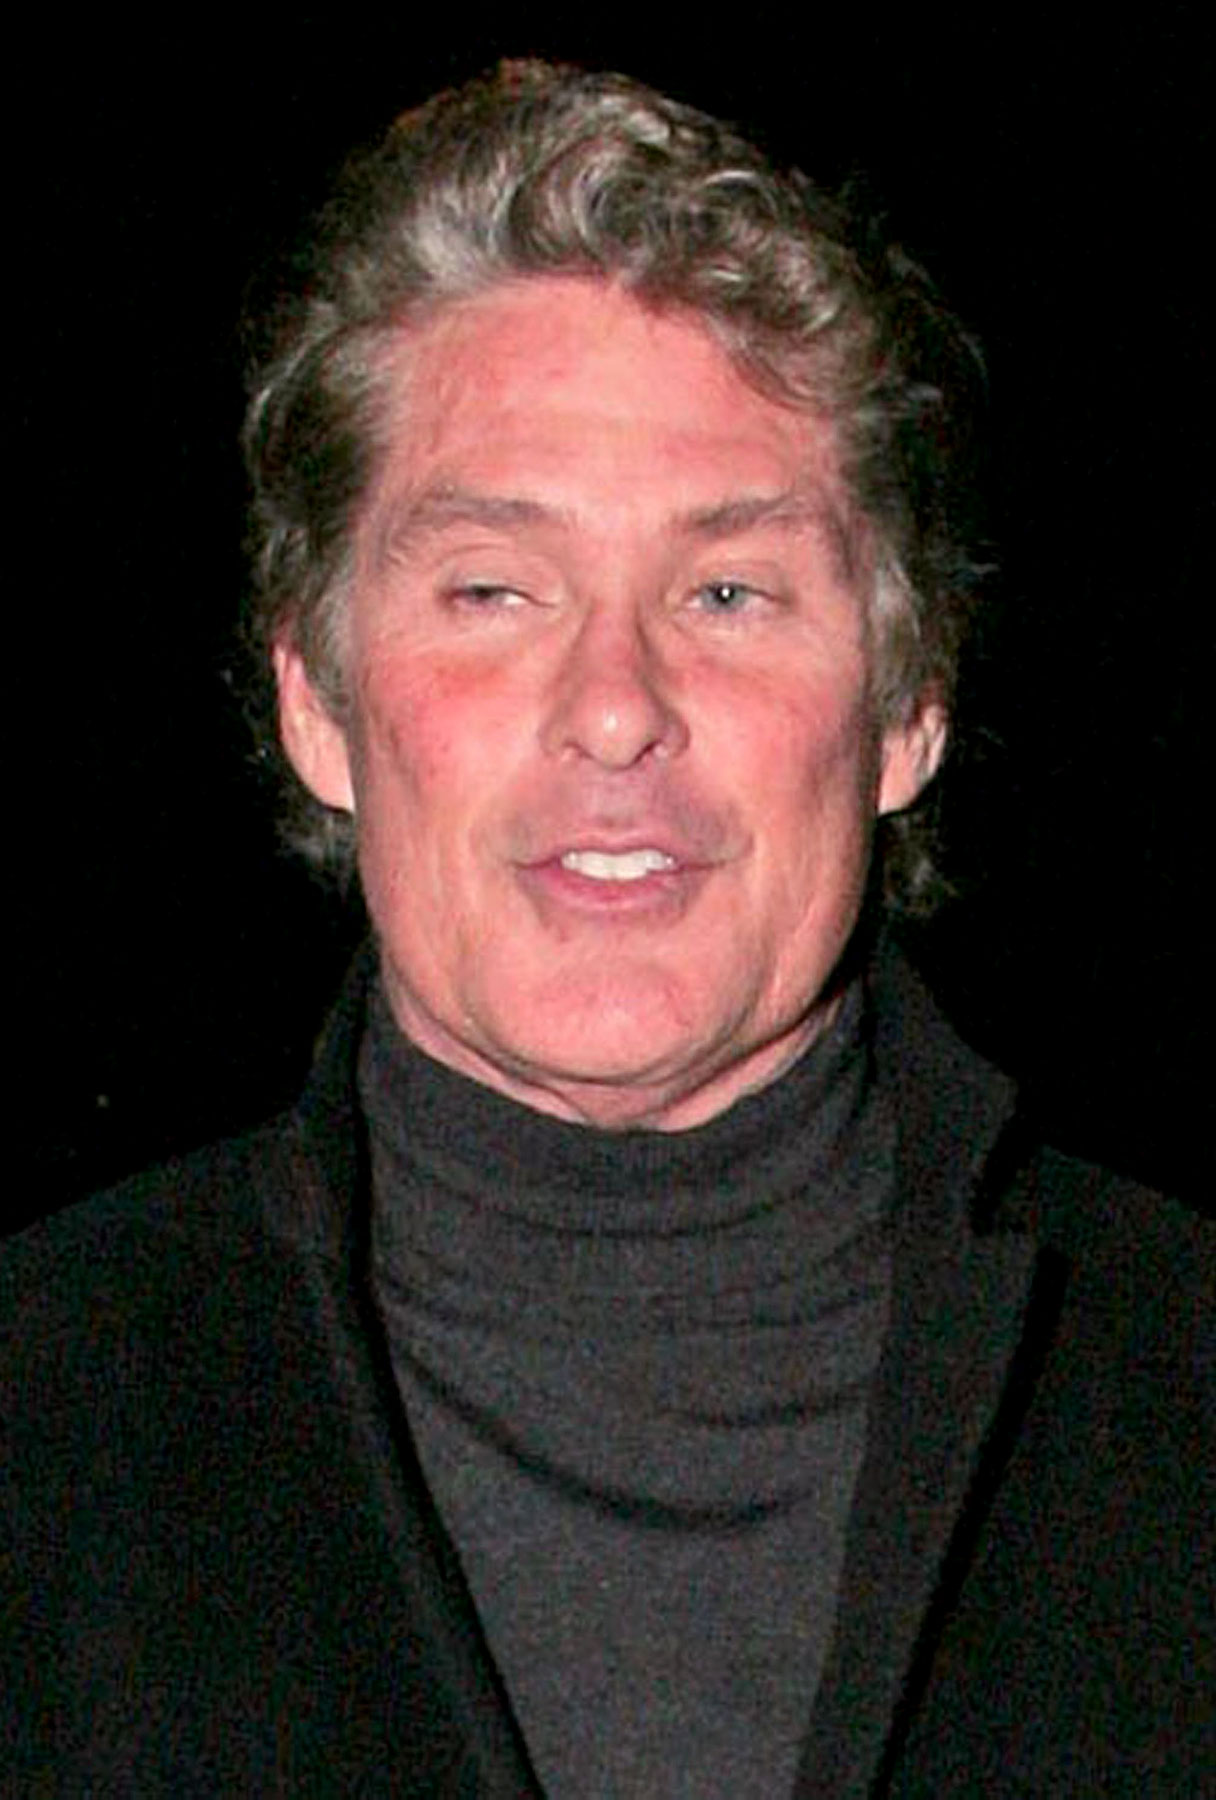 David Hasselhoff Brings the Good Times to London